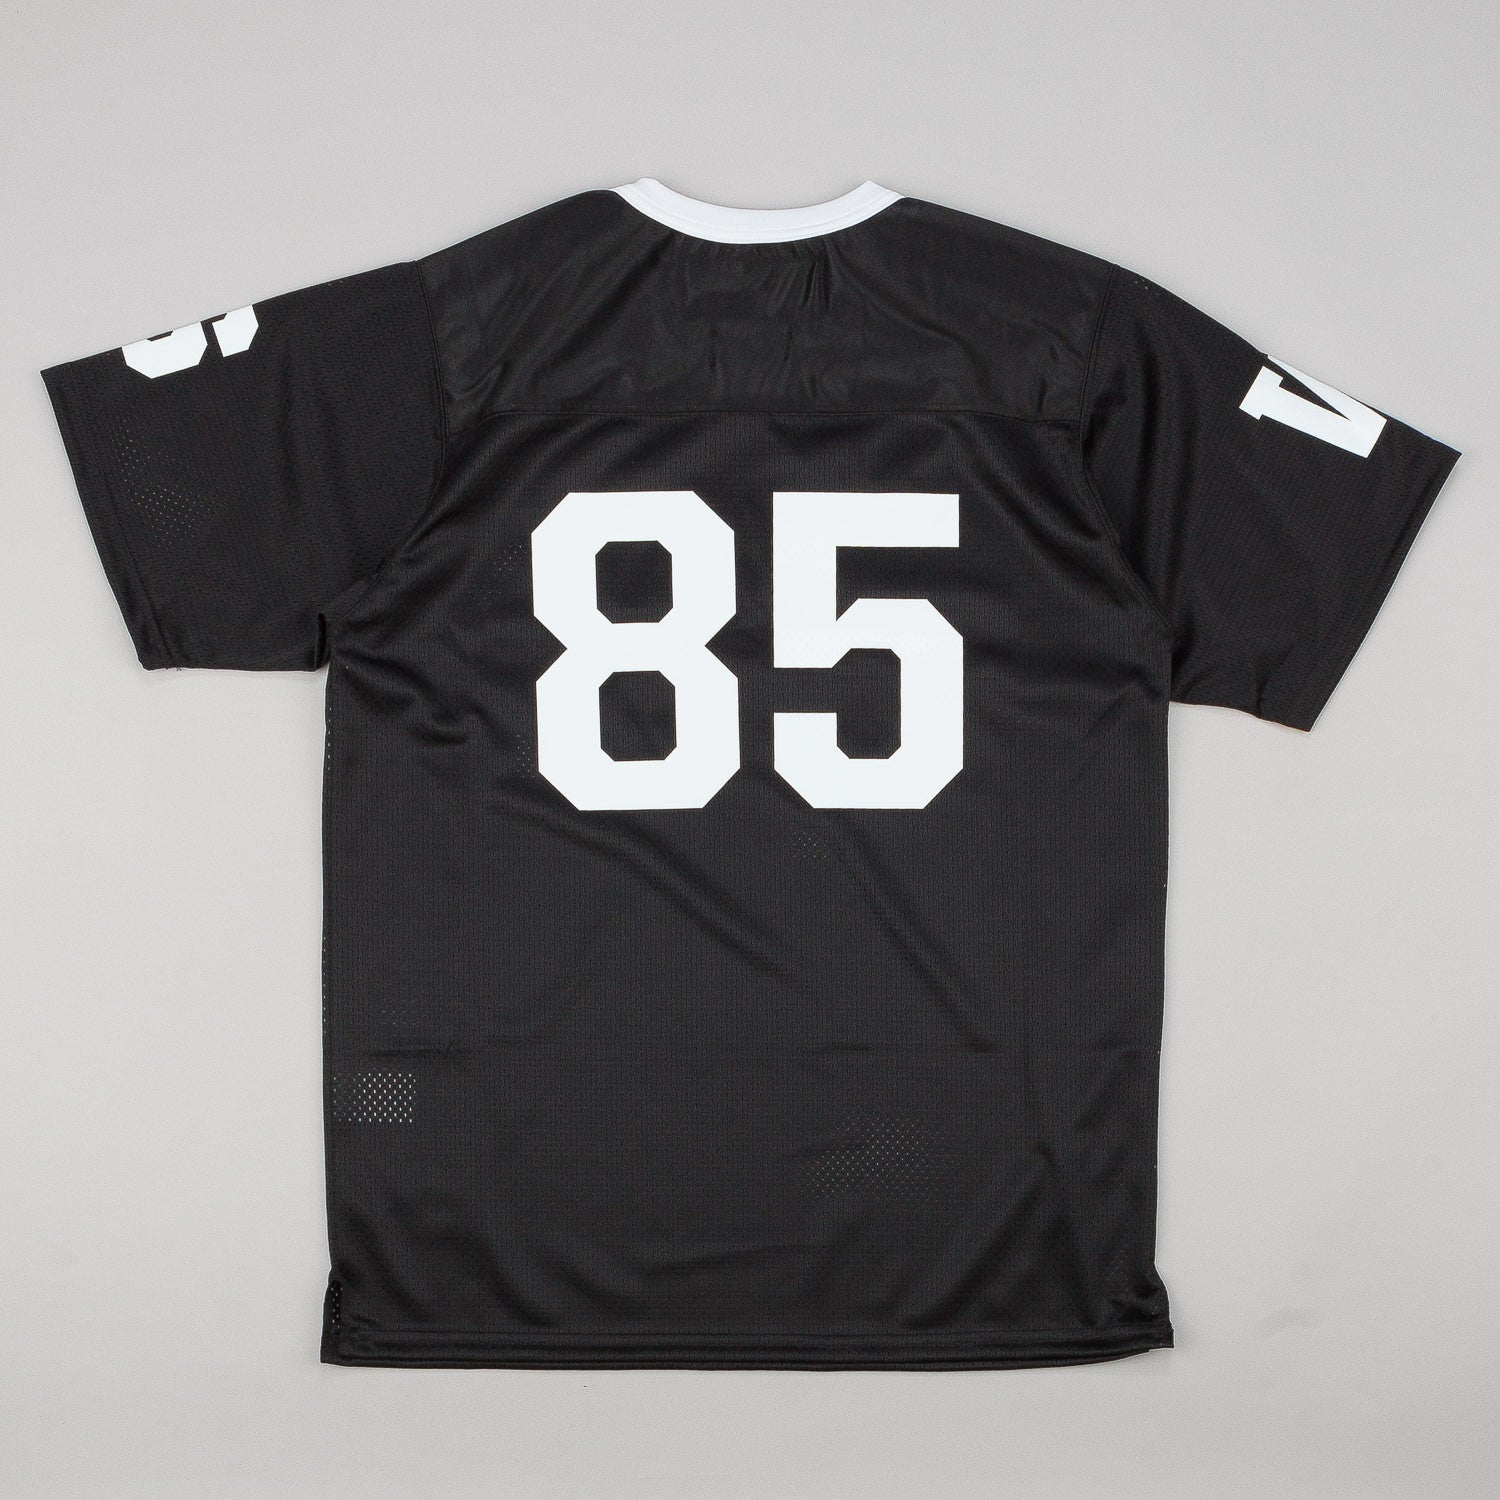 Raised By Wolves Short Sleeve Football Jersey - Black Dazzle